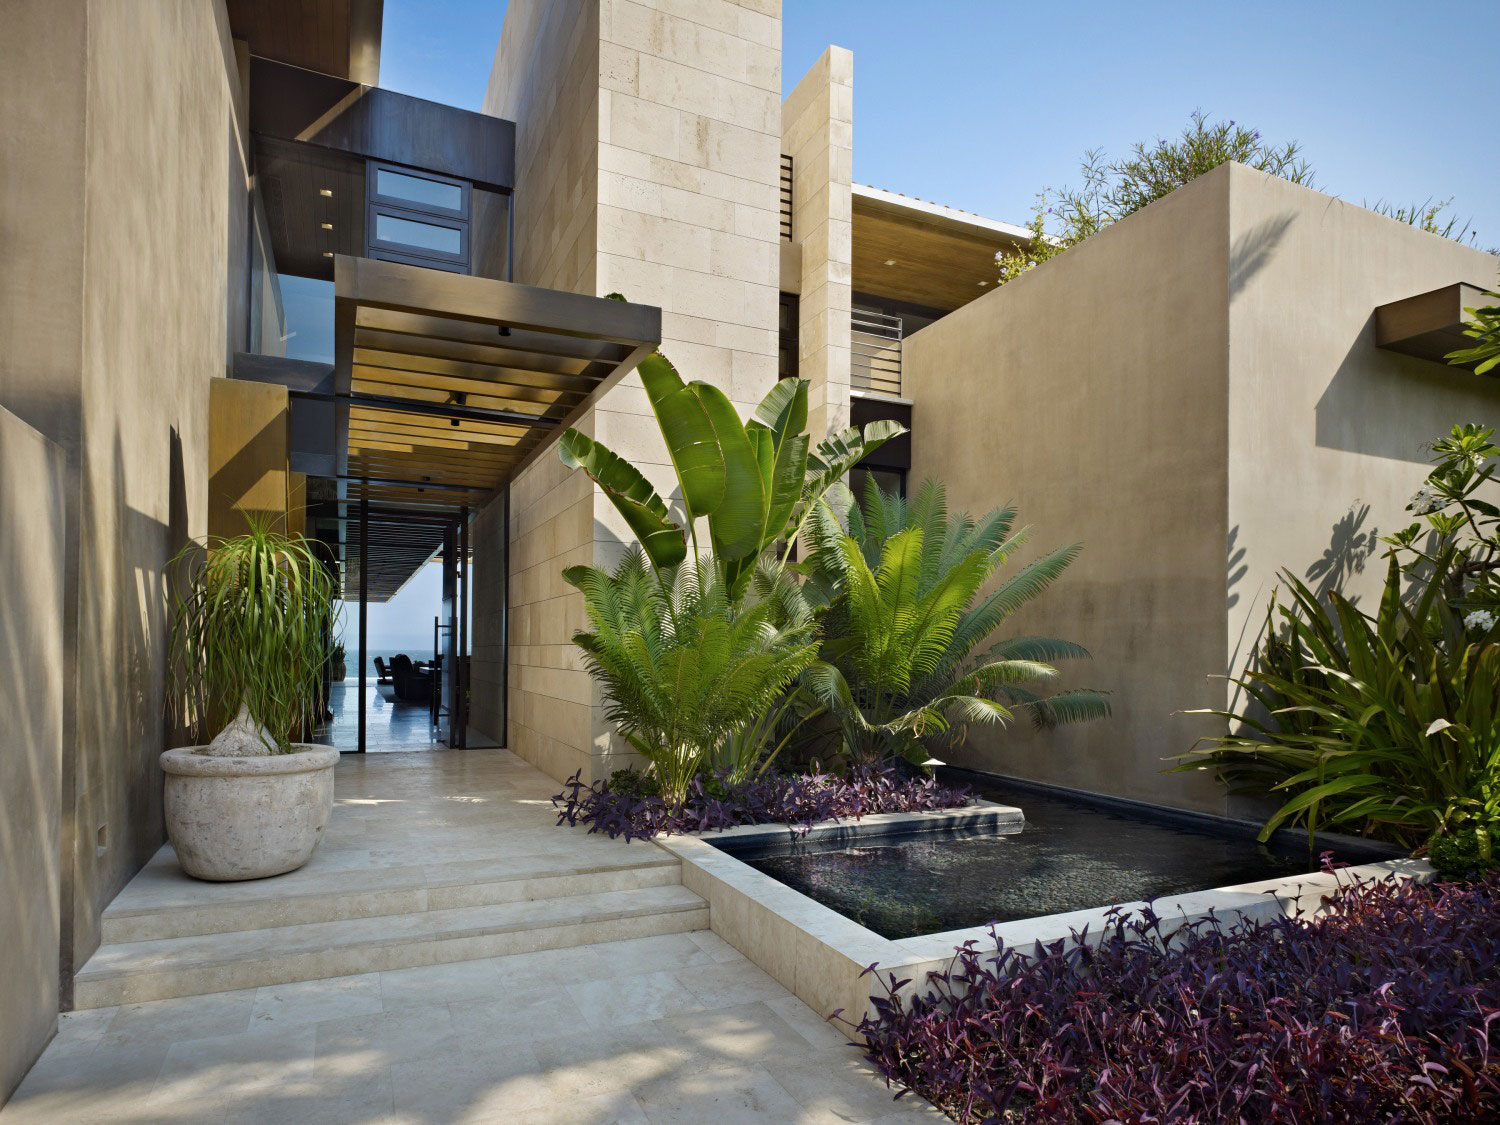 Water Feature, Entrance, Beachfront Home in Cabo San Lucas, Mexico